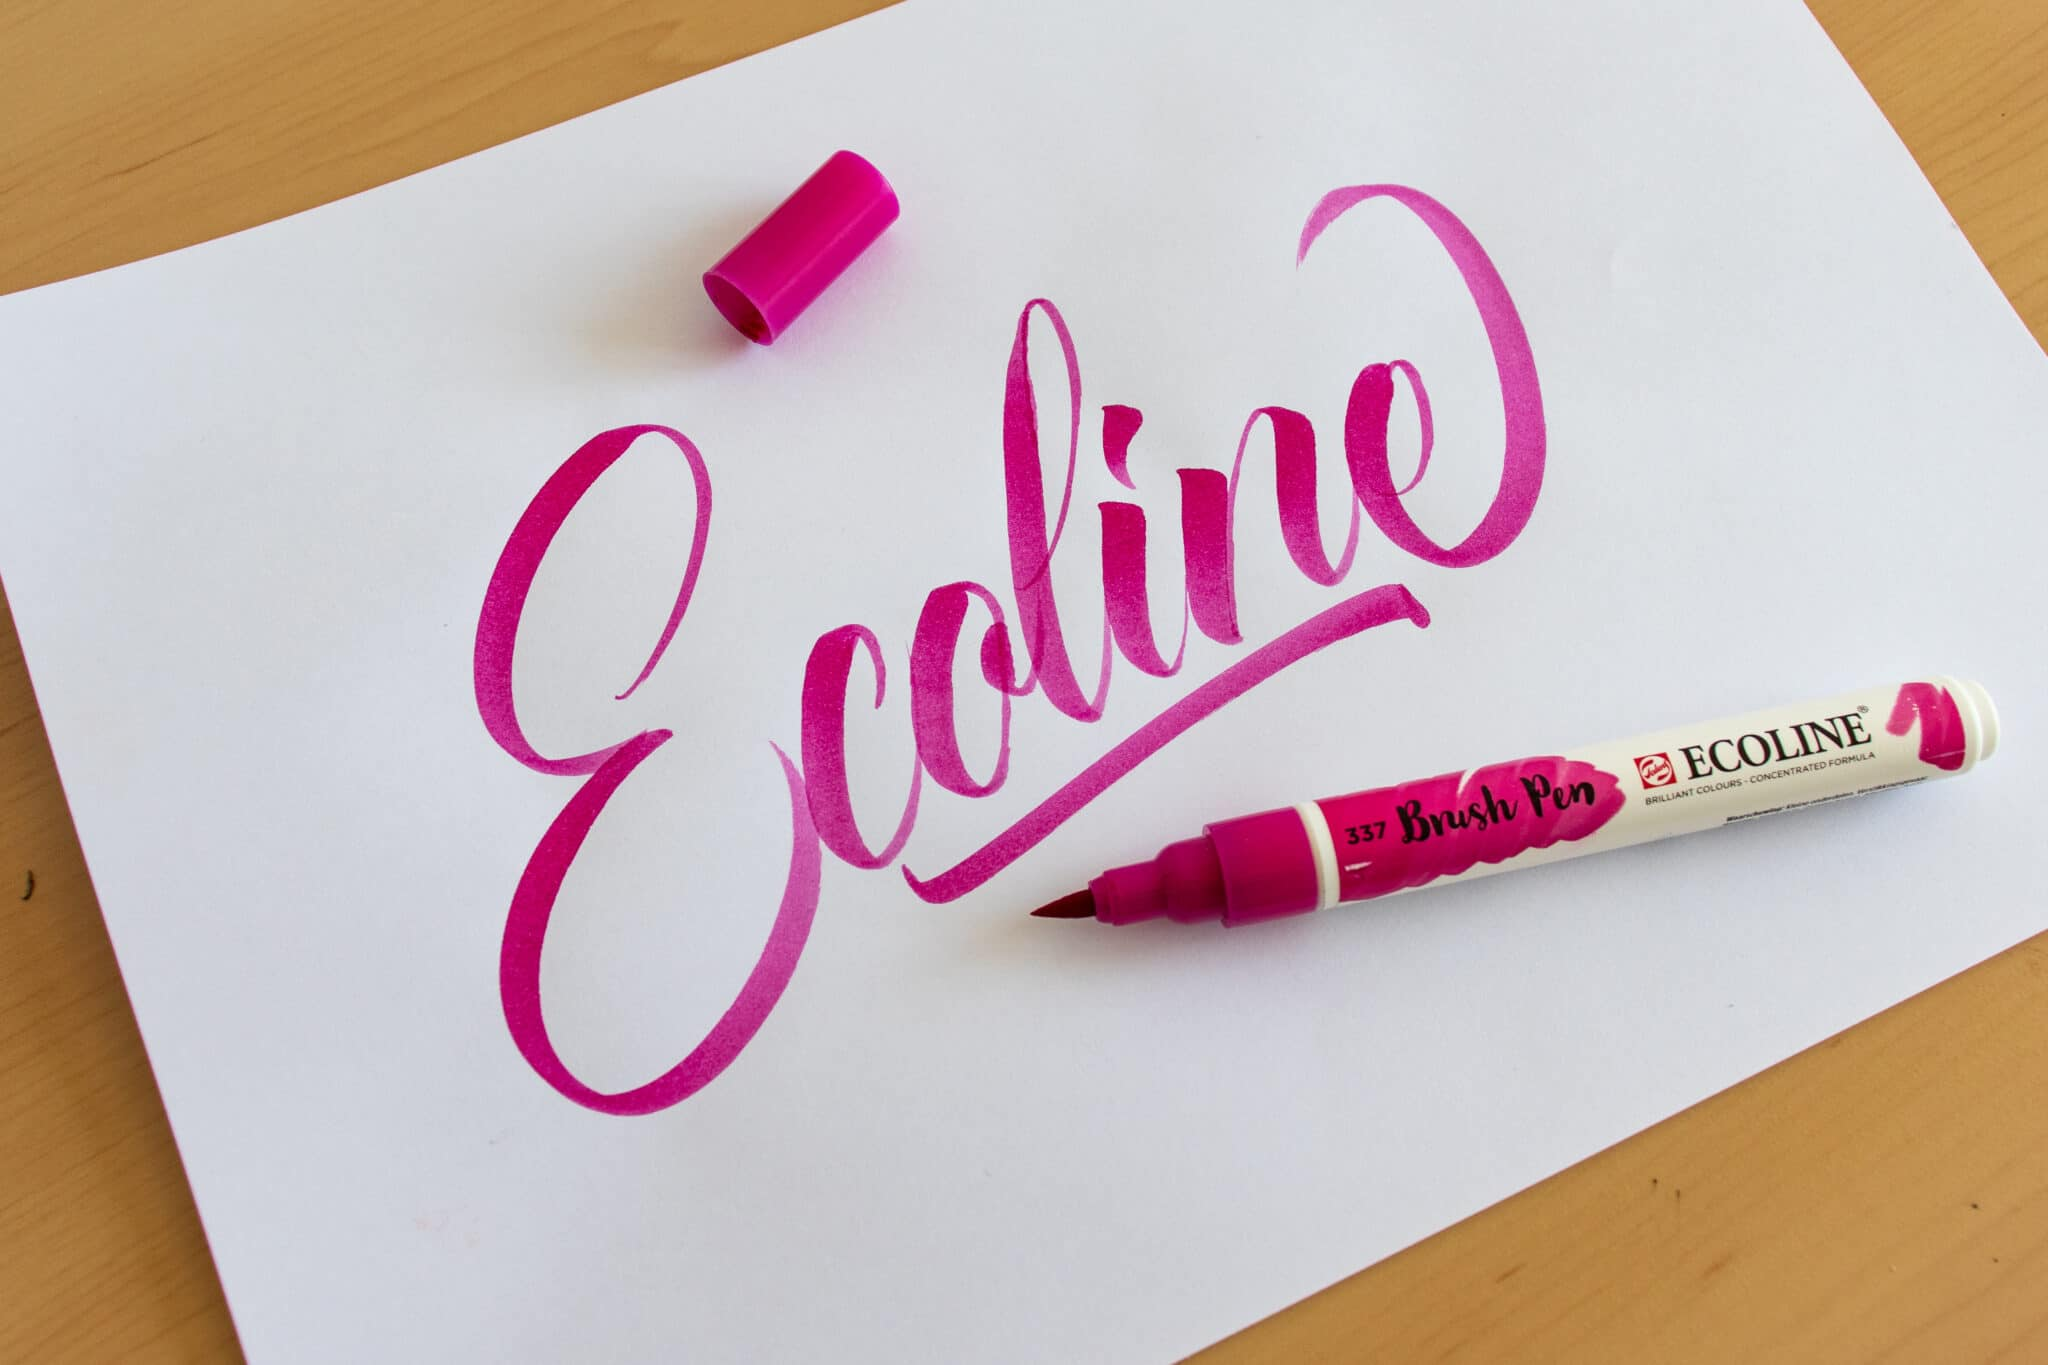 Ecoline Brush Pen - sample calligraphy